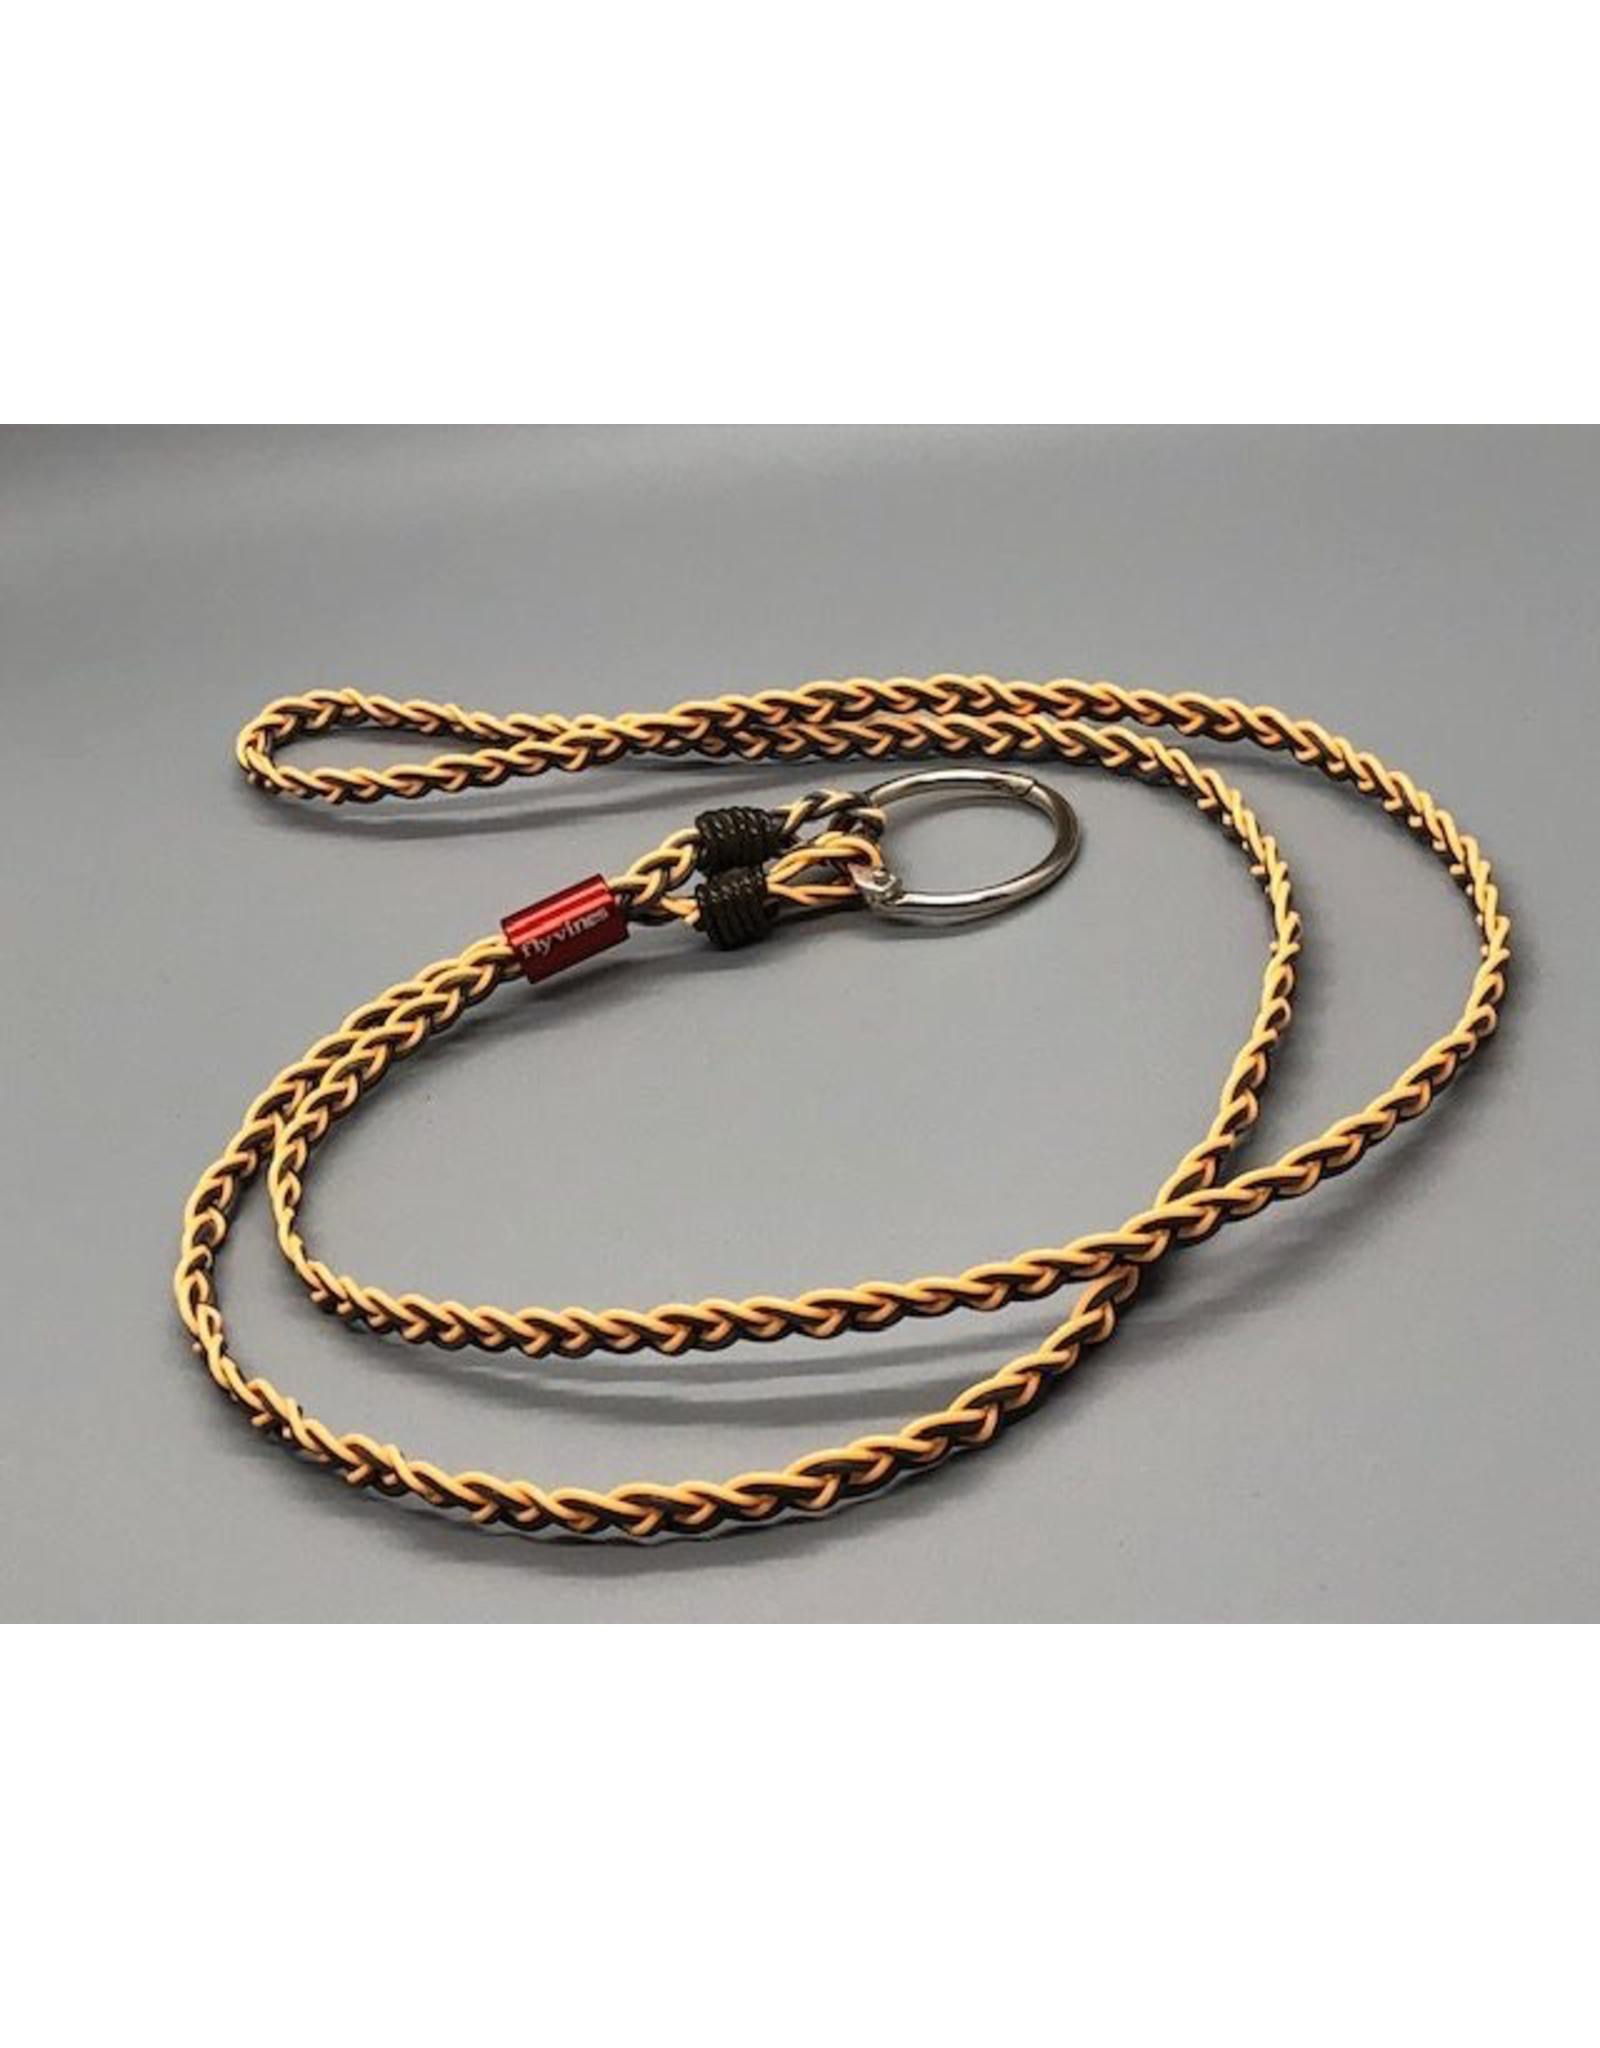 The Flyvines Original Lanyard is the perfect go to lanyard for those looking to keep it simple